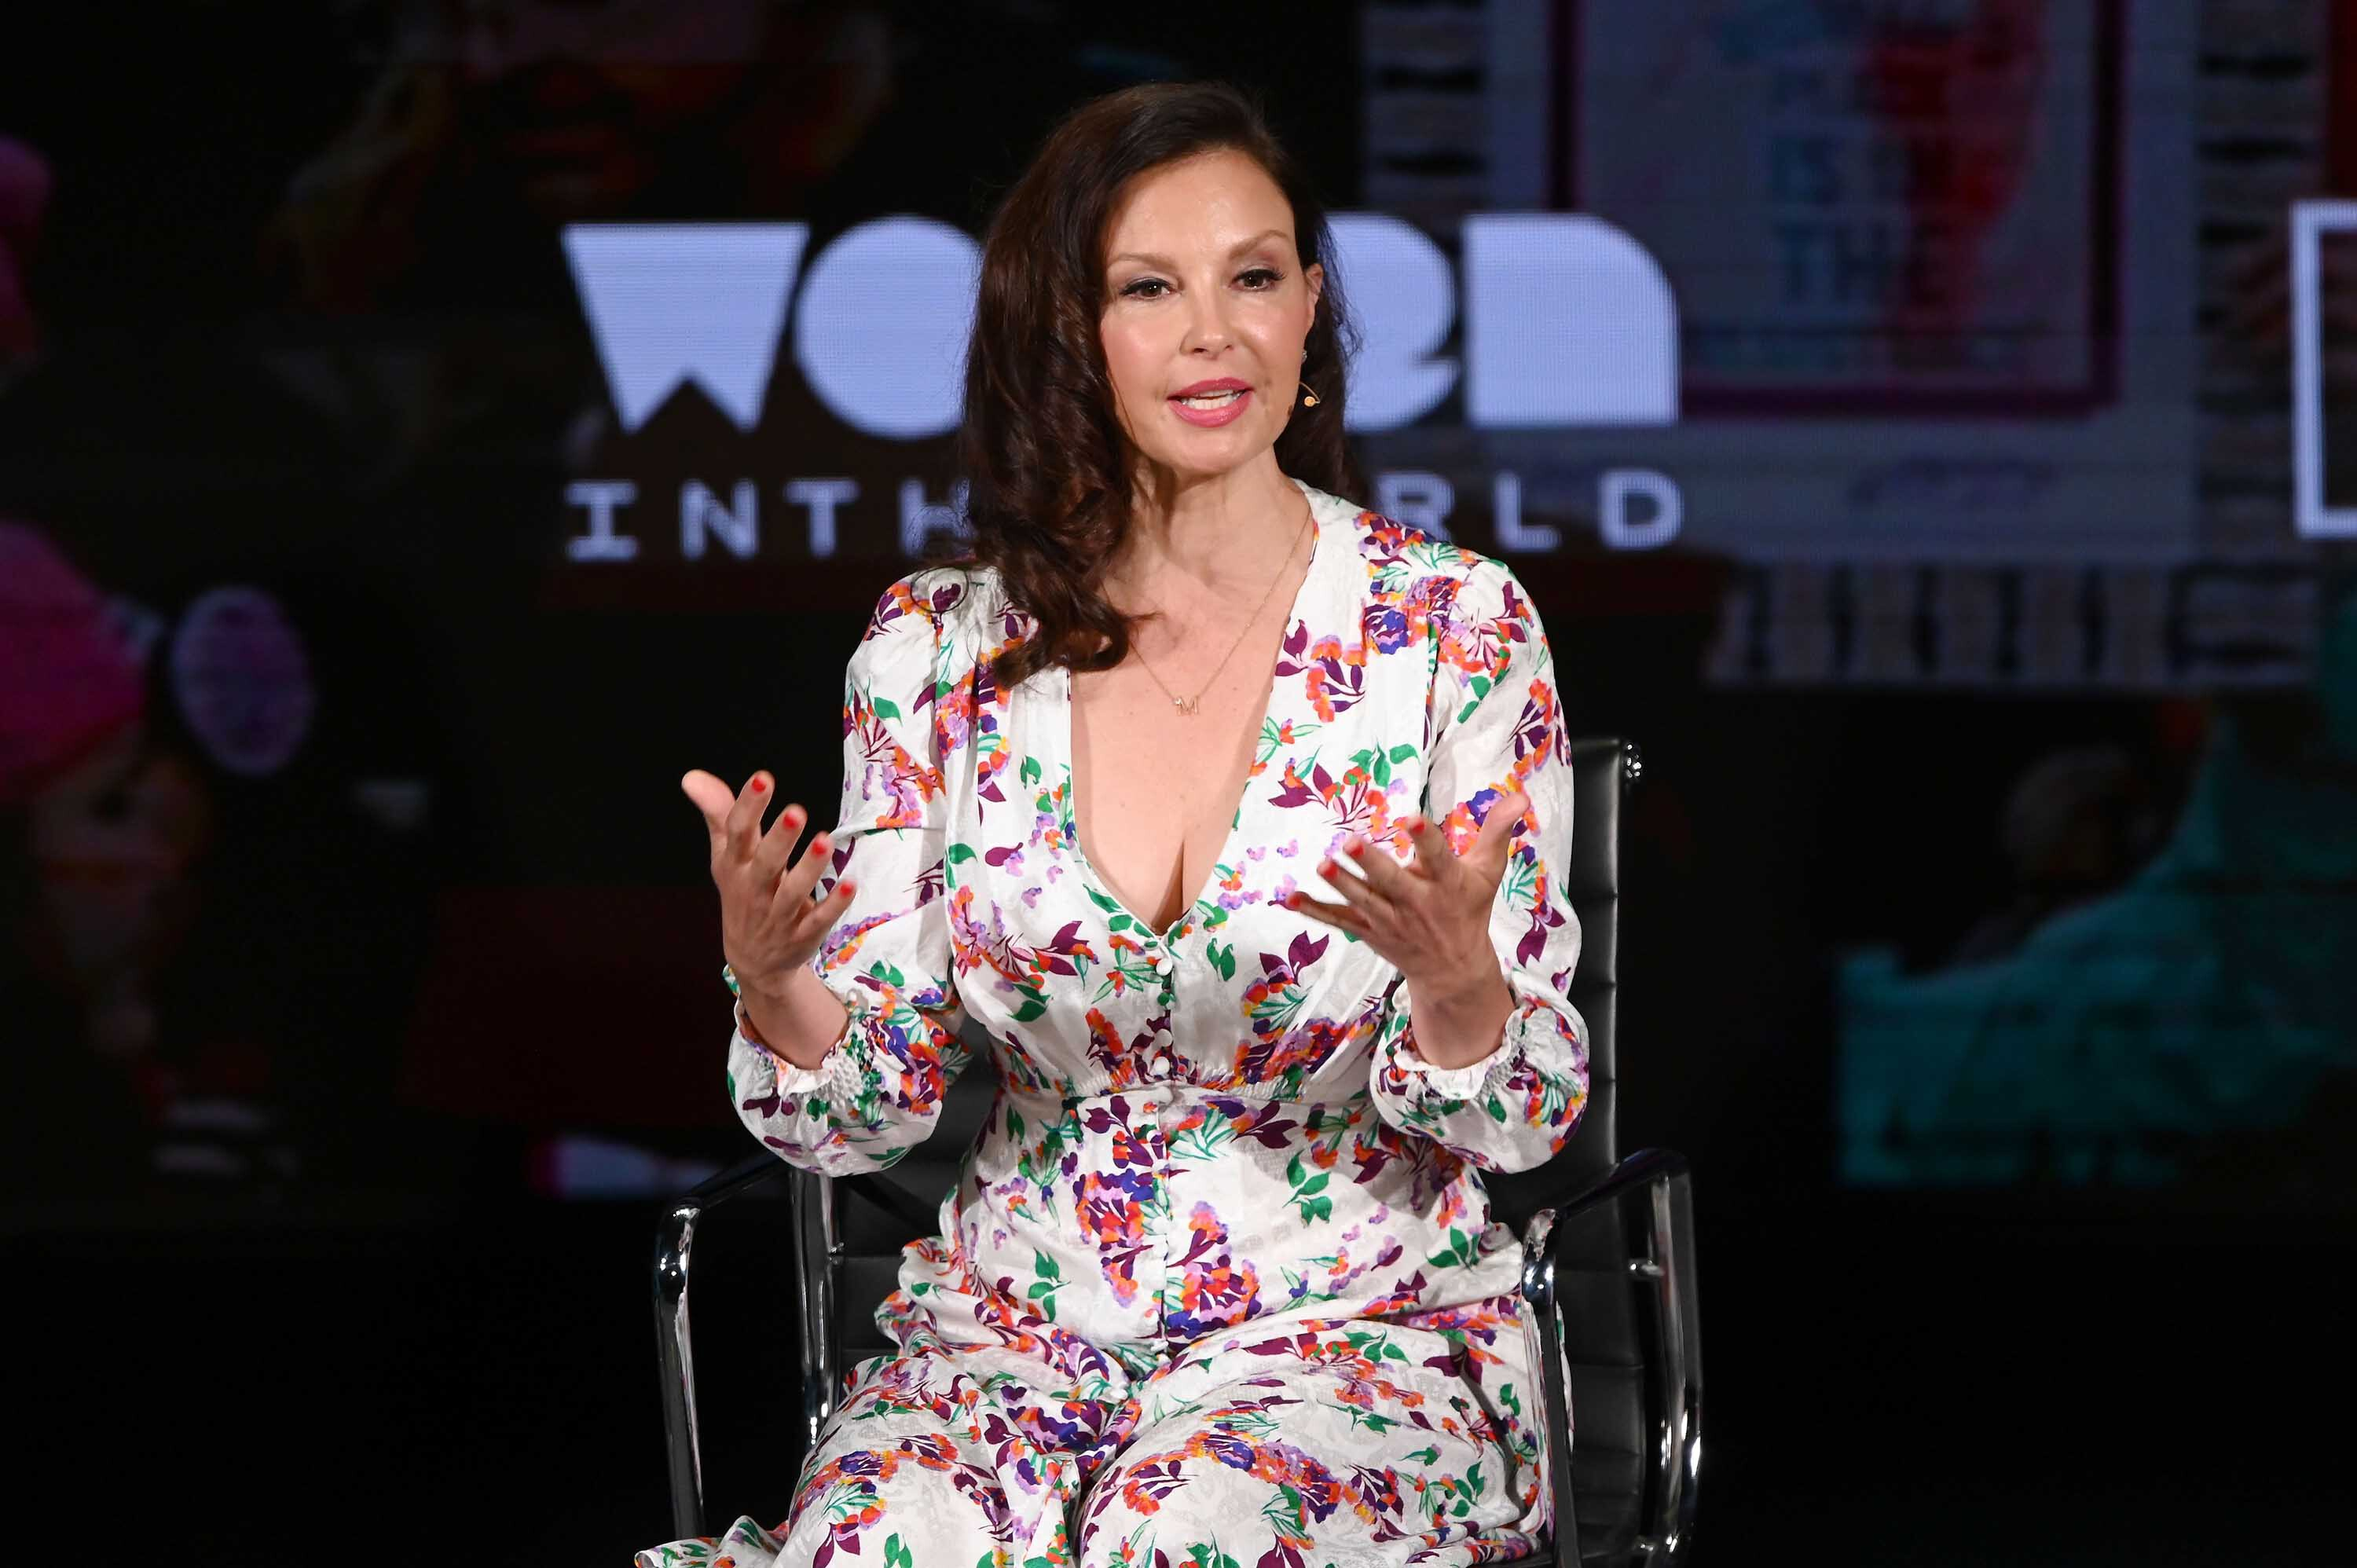 Ashley Judd is walking again, six months after shattering her leg in Congo accident